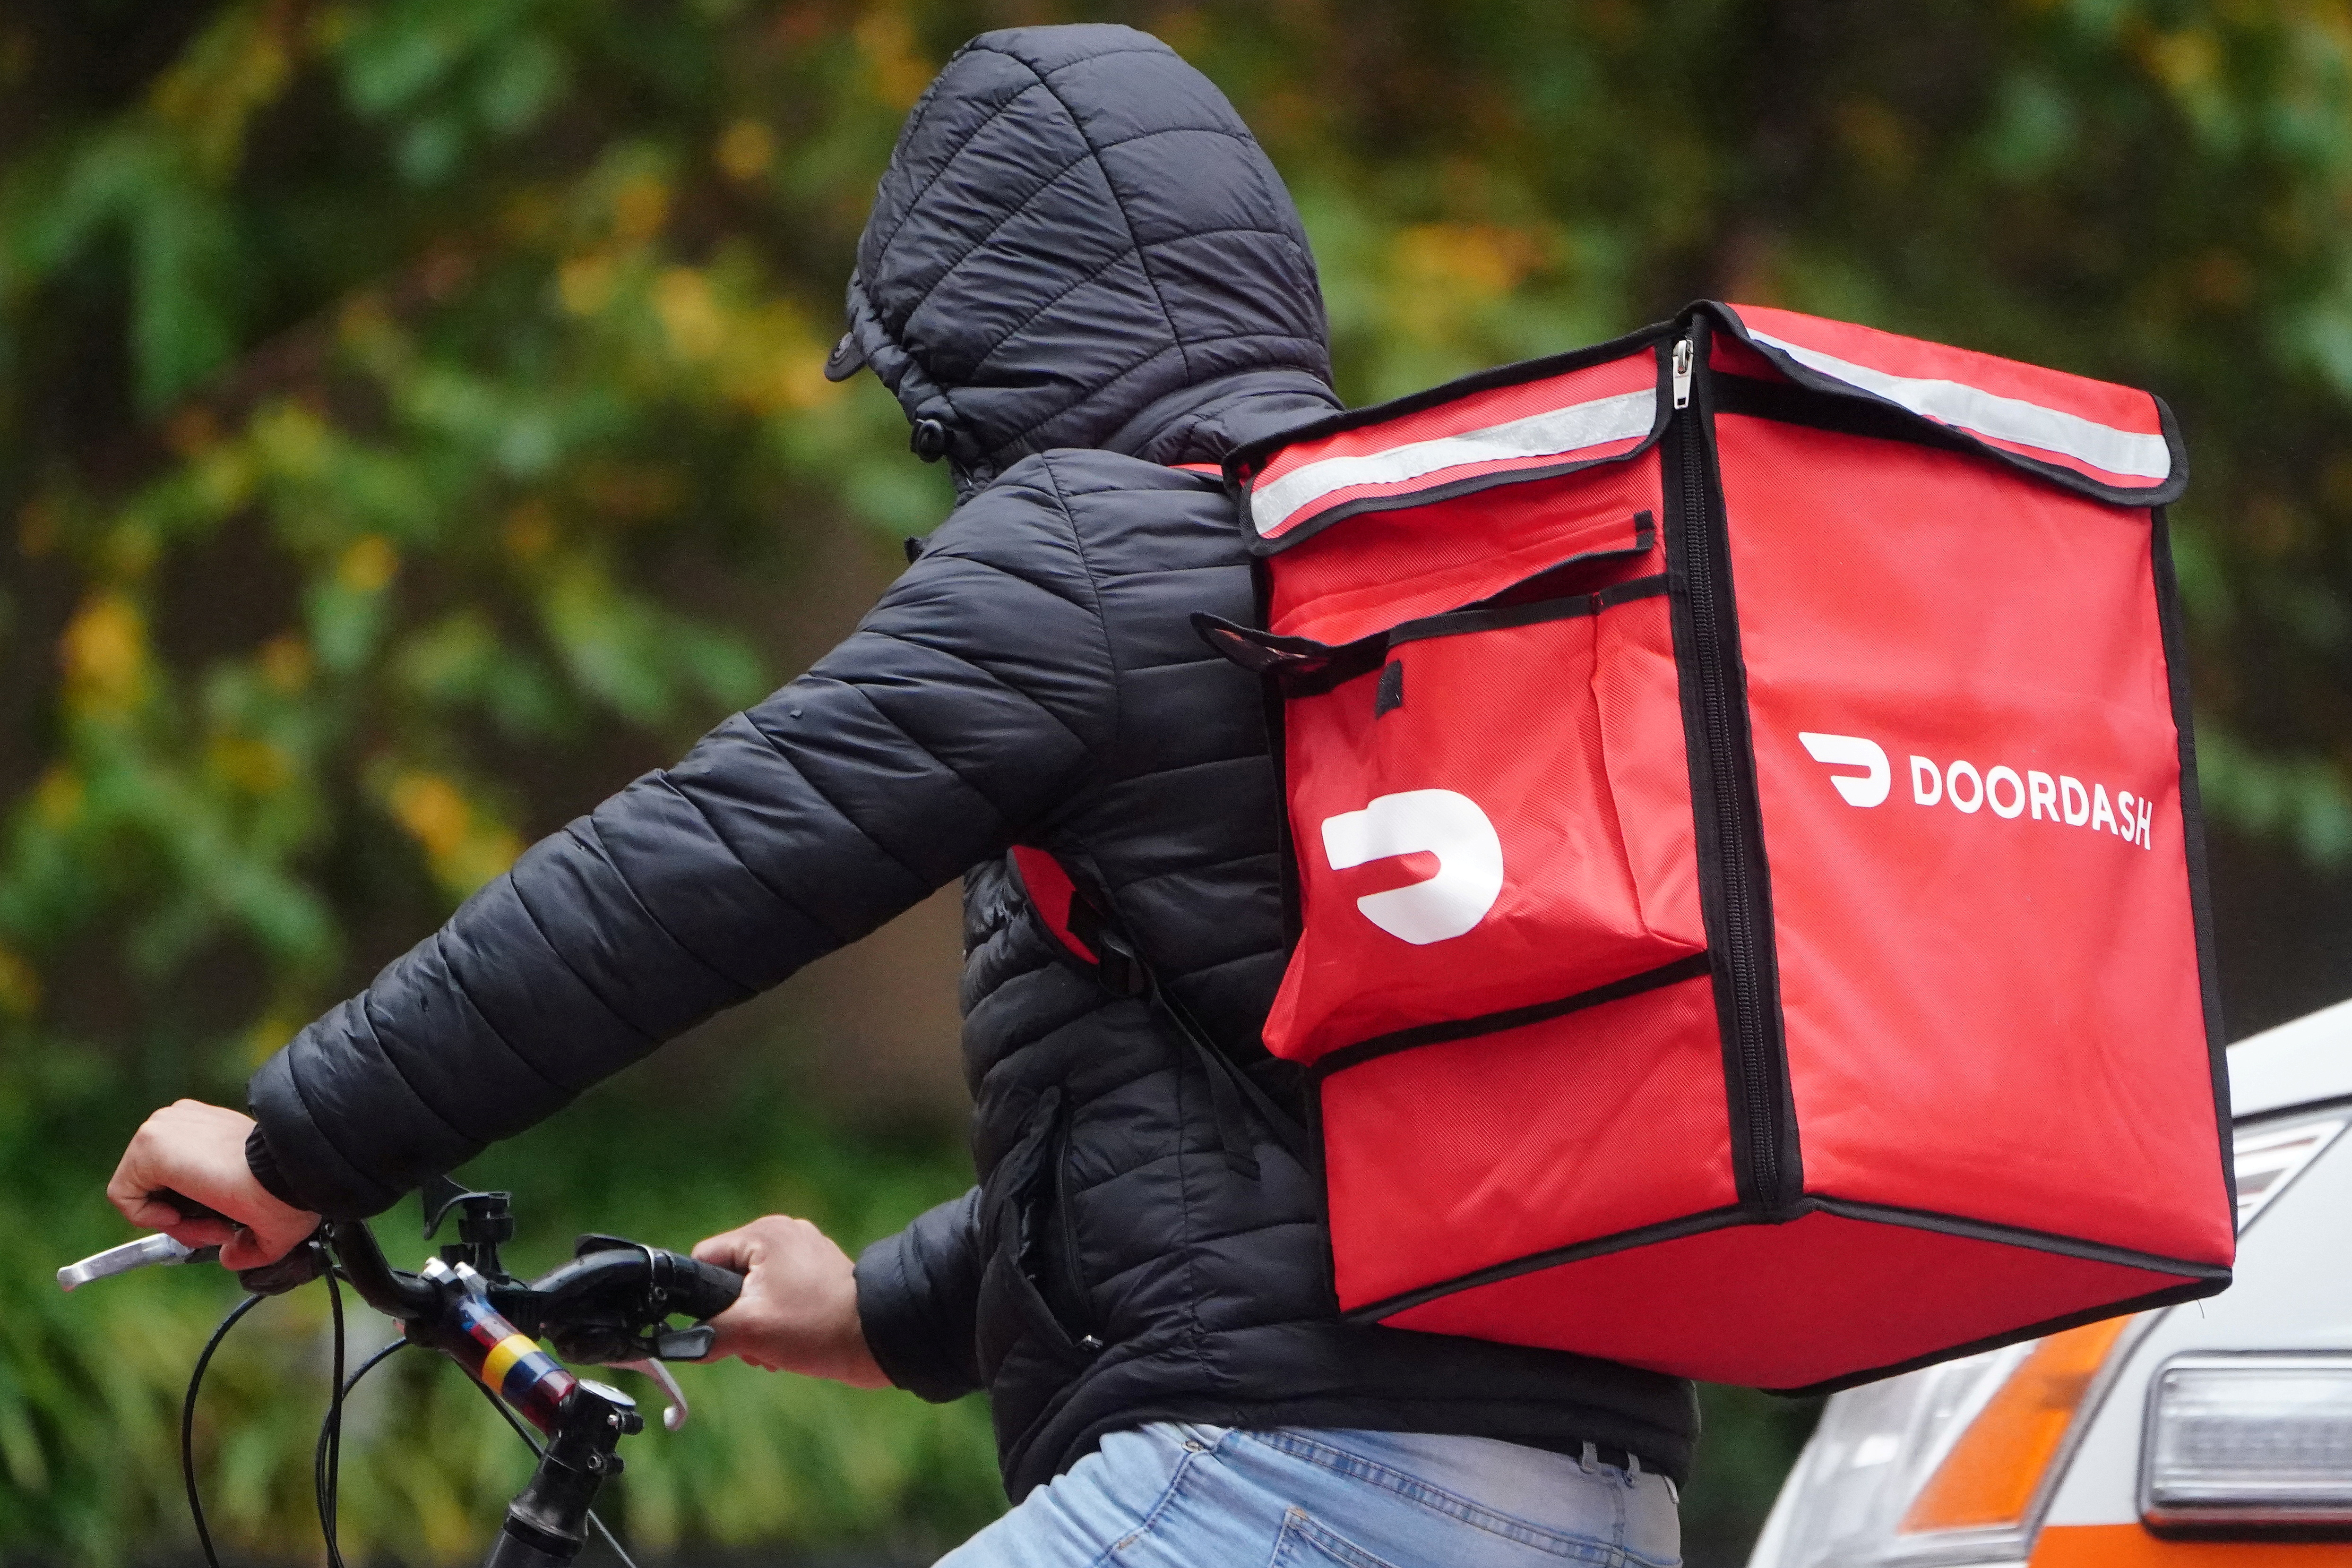 A delivery person for Doordash rides his bike in the rain in the Manhattan borough of New York City, New York, U.S., November 13, 2020. REUTERS/Carlo Allegri/File Photo